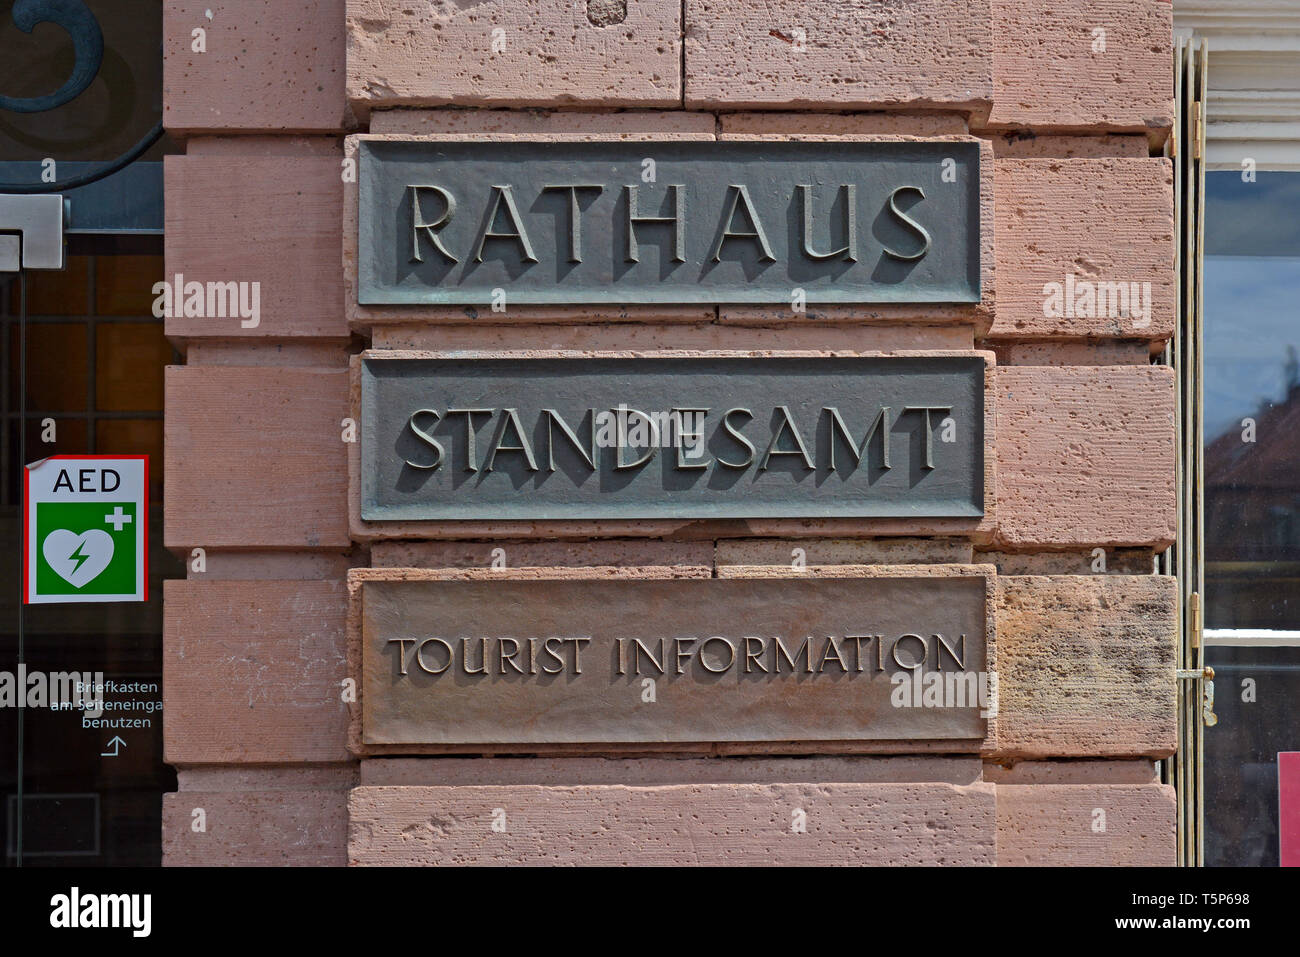 Sign Saying Rathaus Meaning City Hall Standesamt Meaning